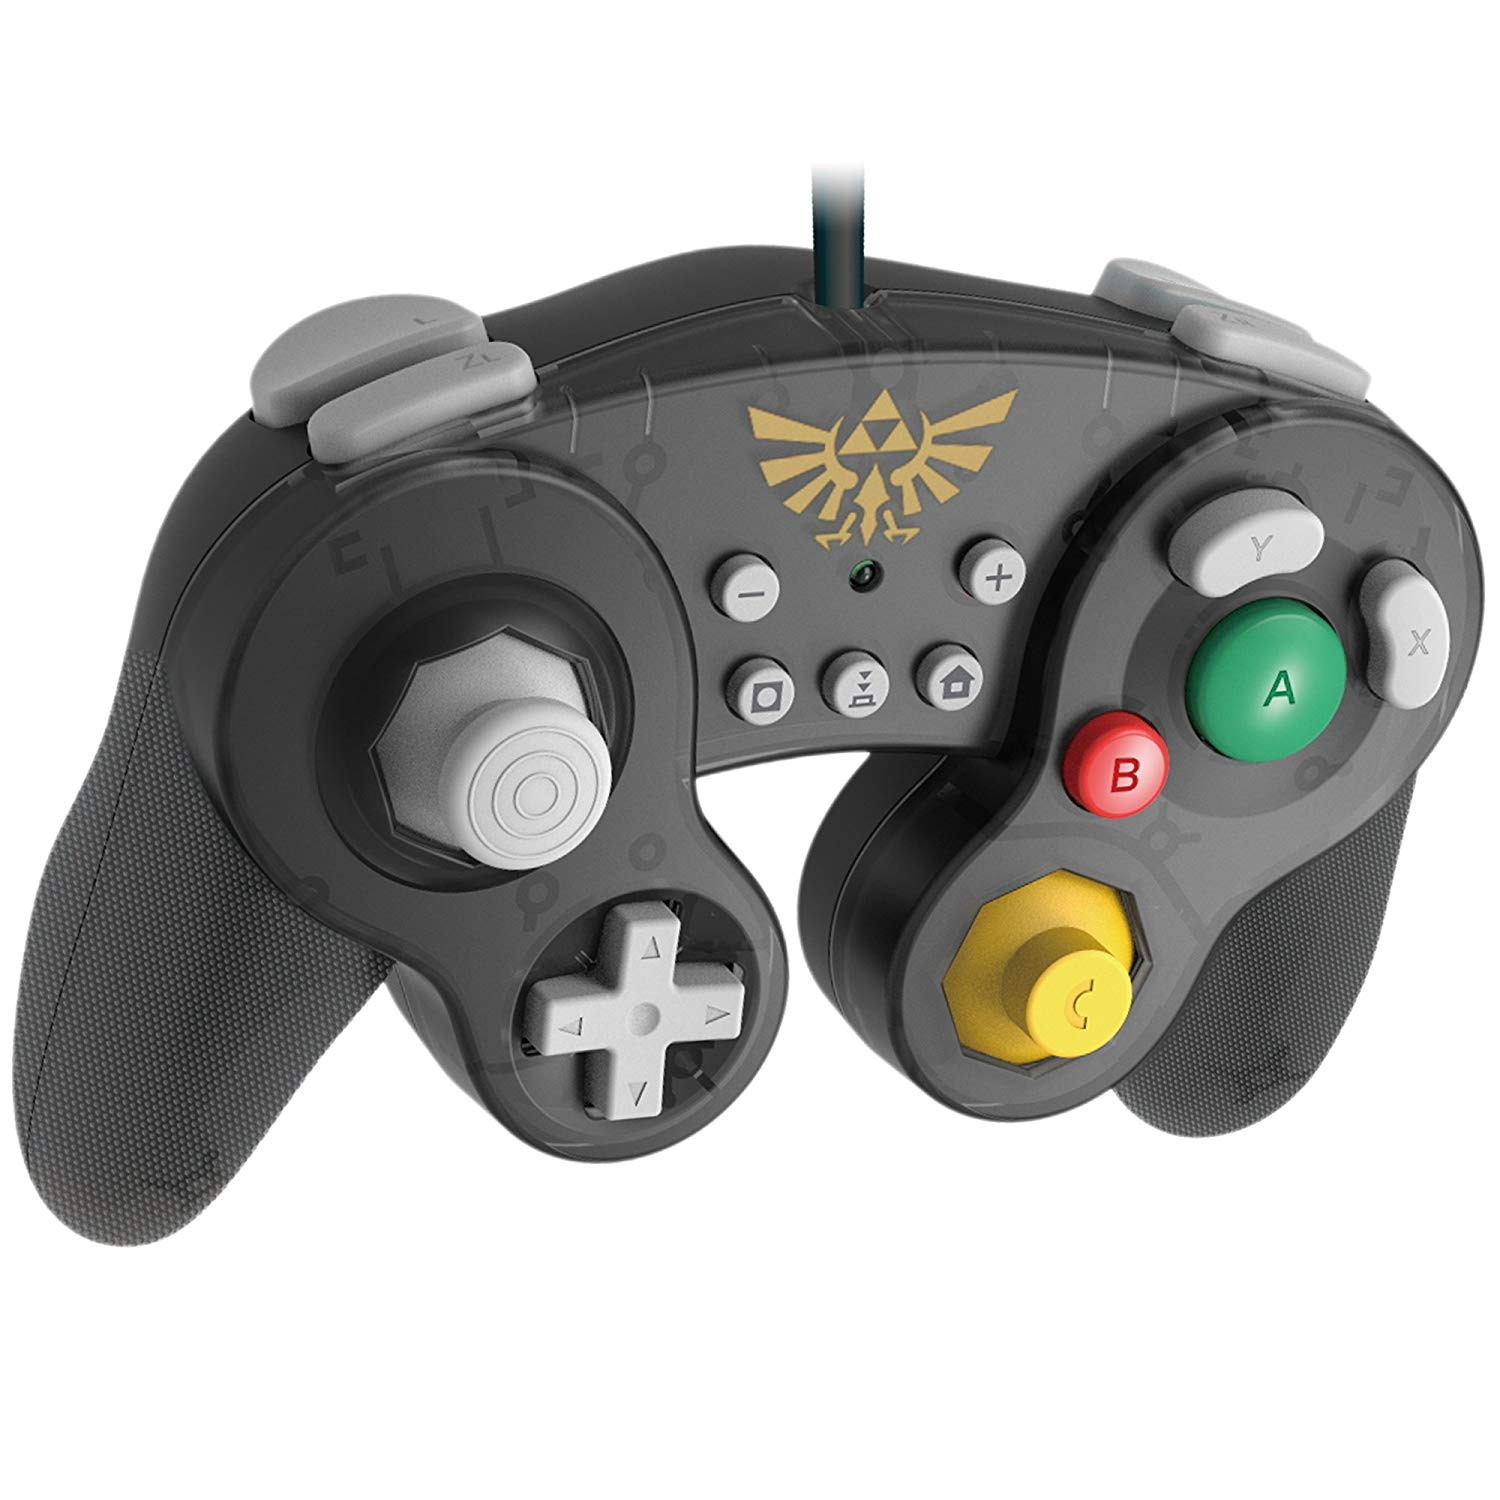 outlet on sale arrives fashion style HORI Reveals Mario, Zelda, And Pikachu GameCube Controllers ...